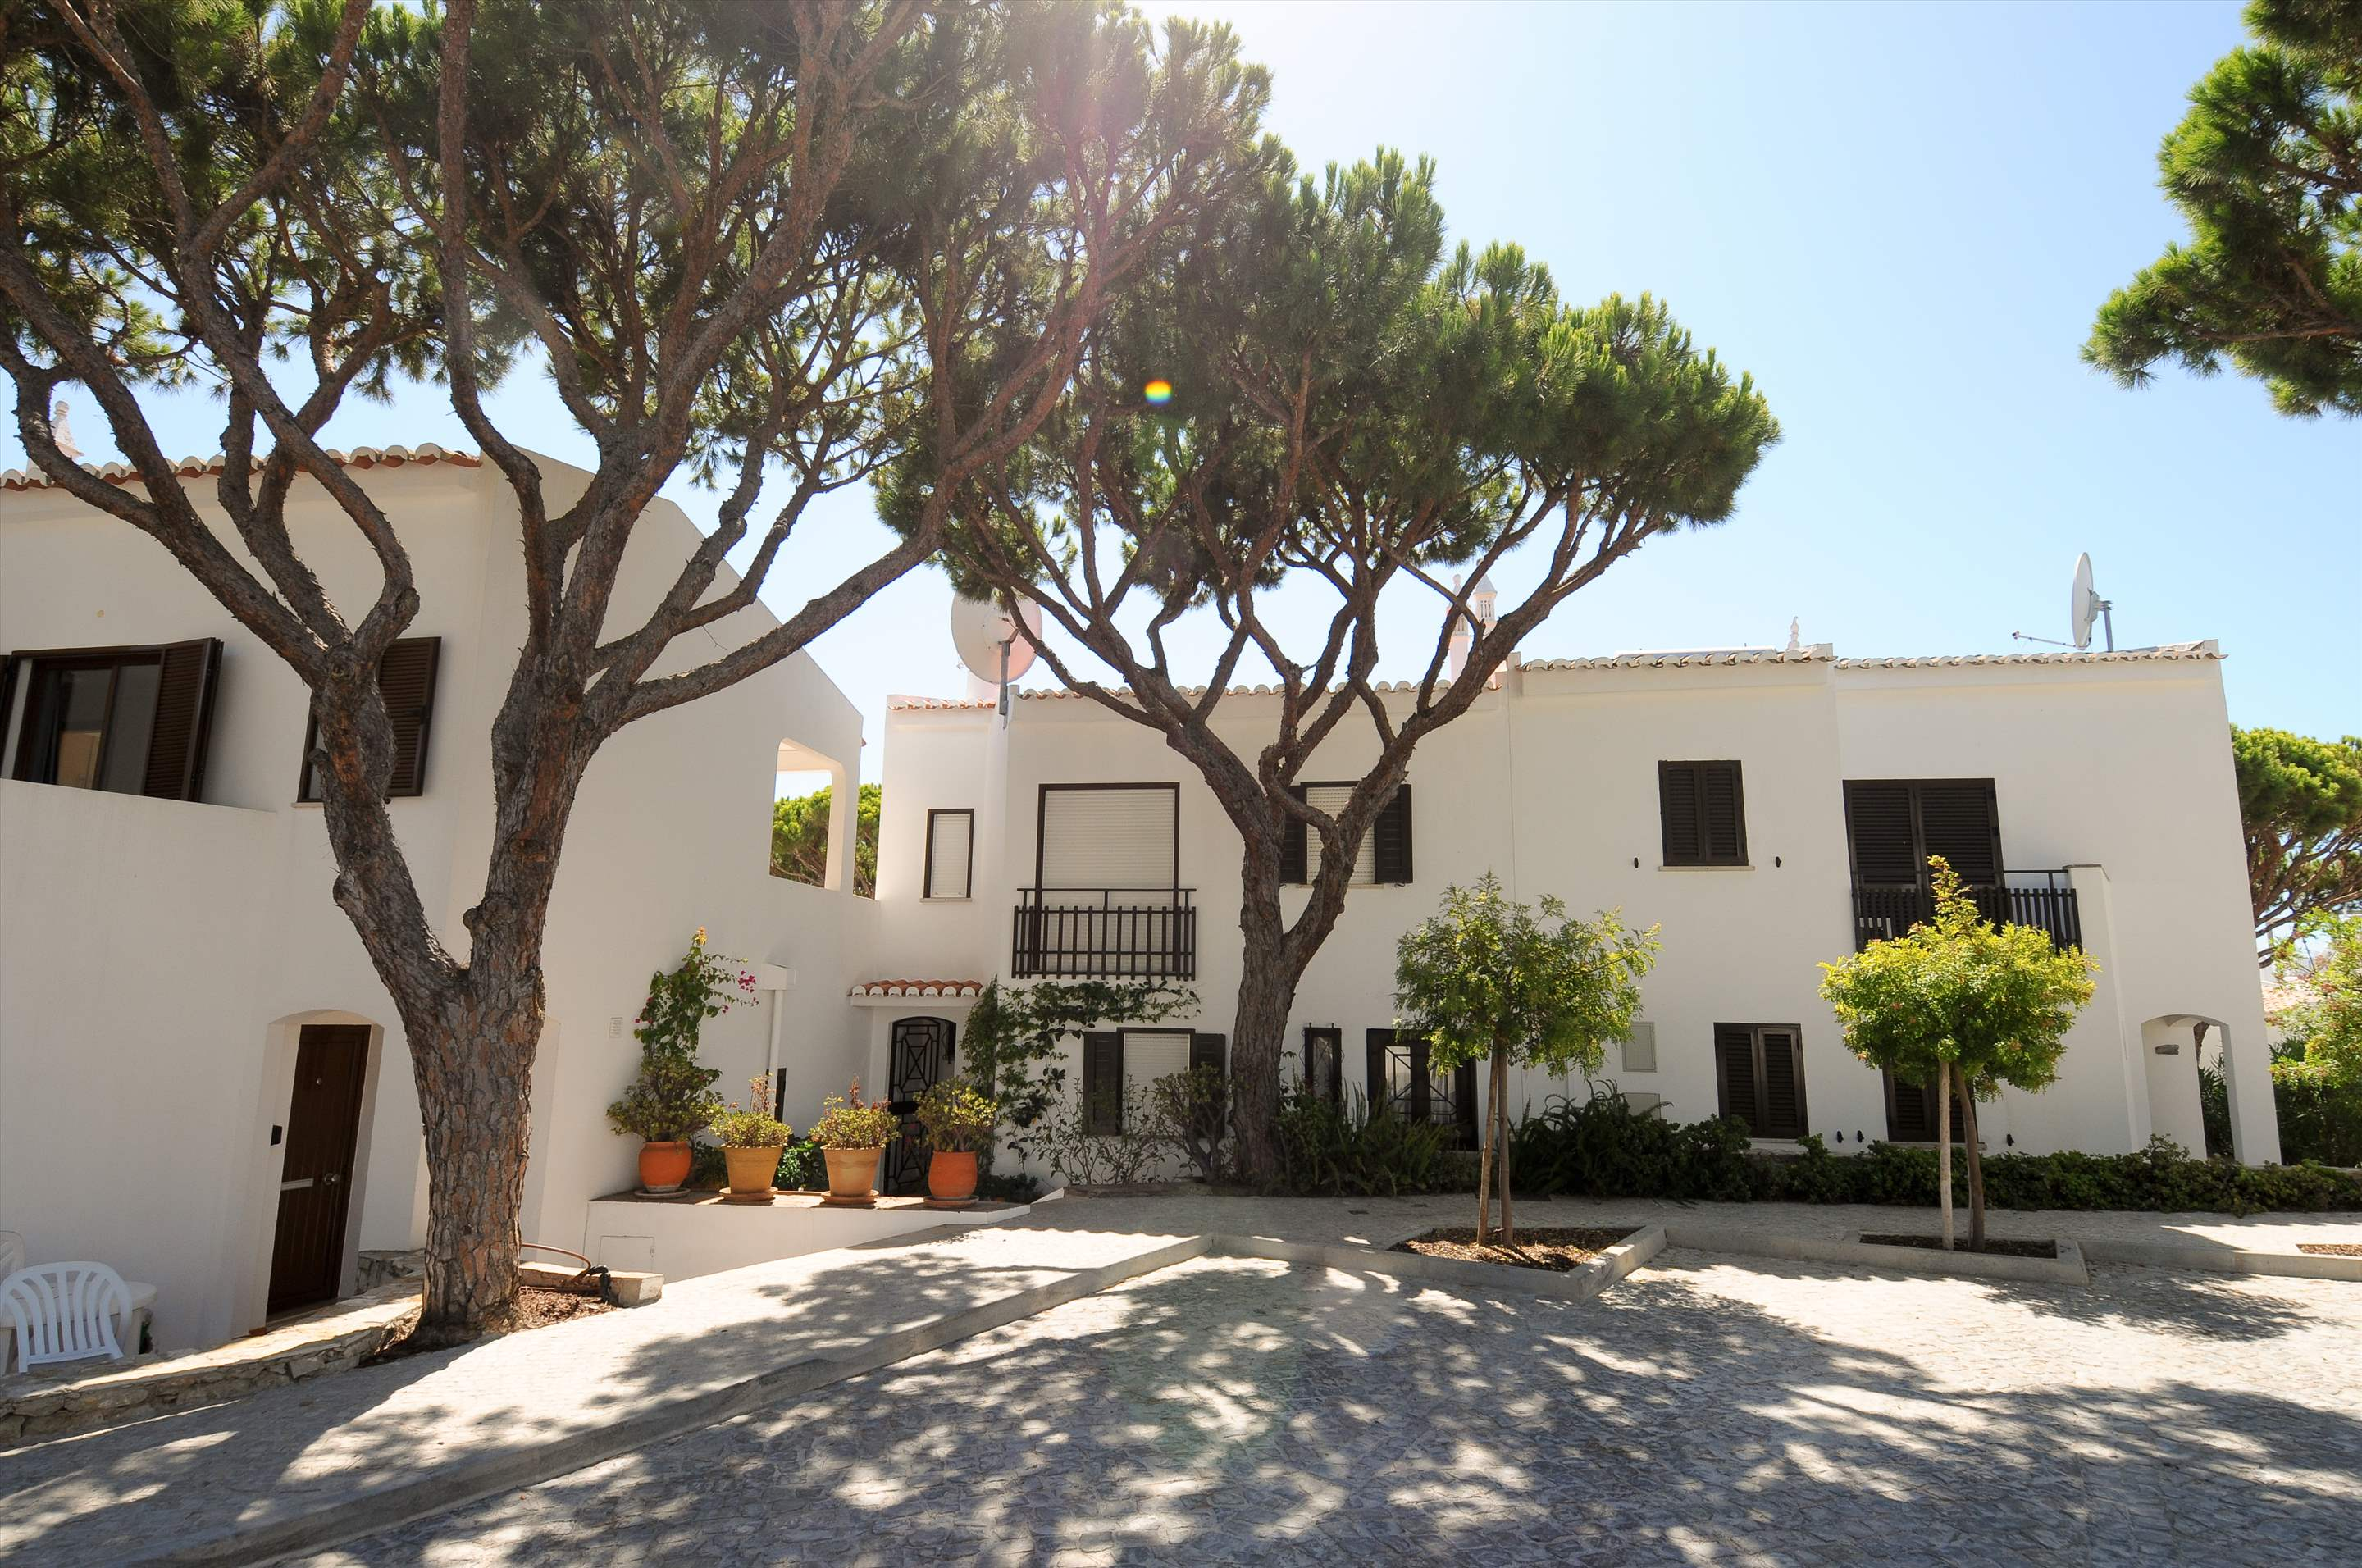 Villa Giroud, 2 bedroom villa in Vale do Lobo, Algarve Photo #1